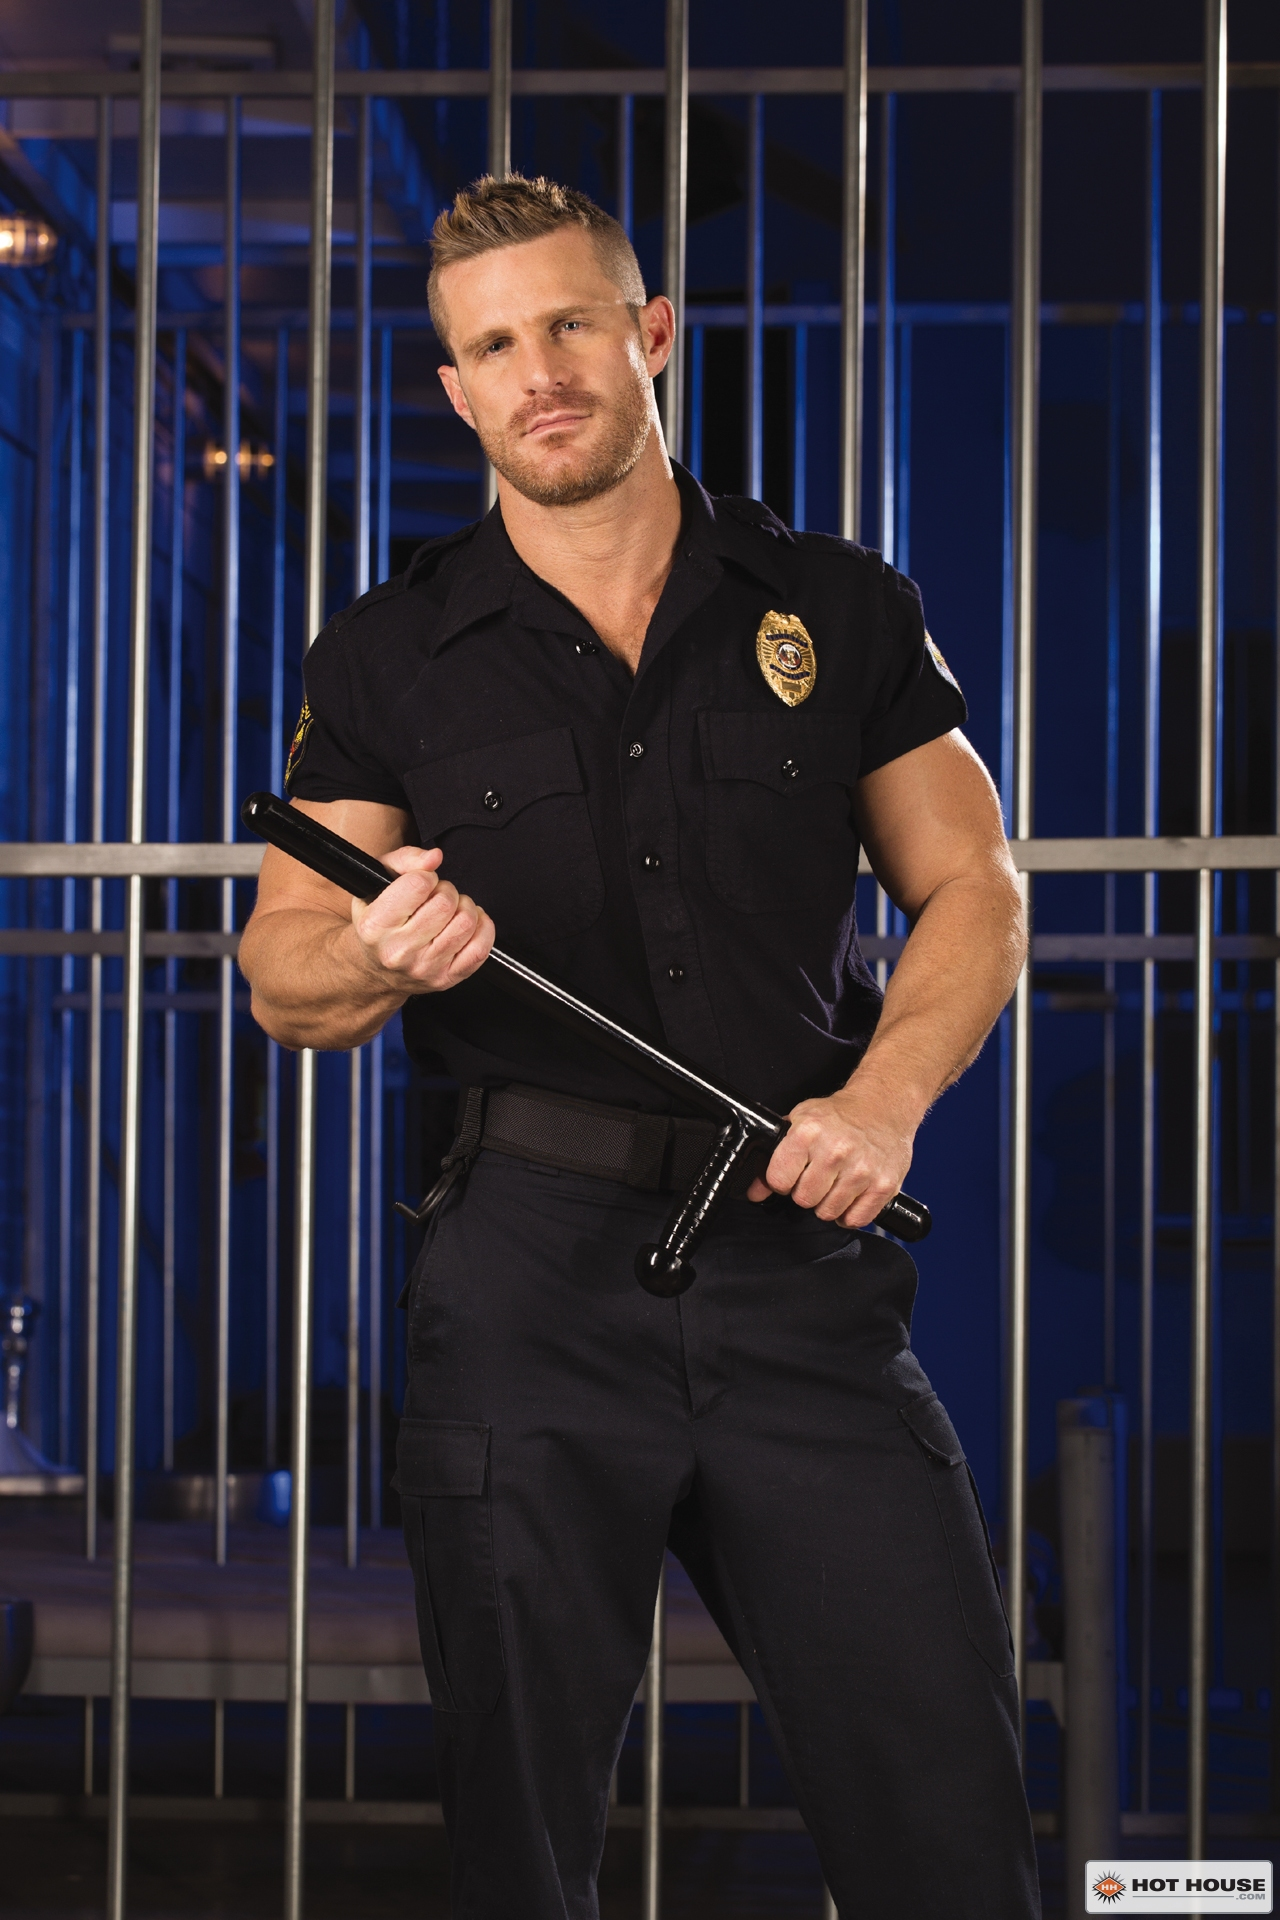 Landon Conrad as a cop